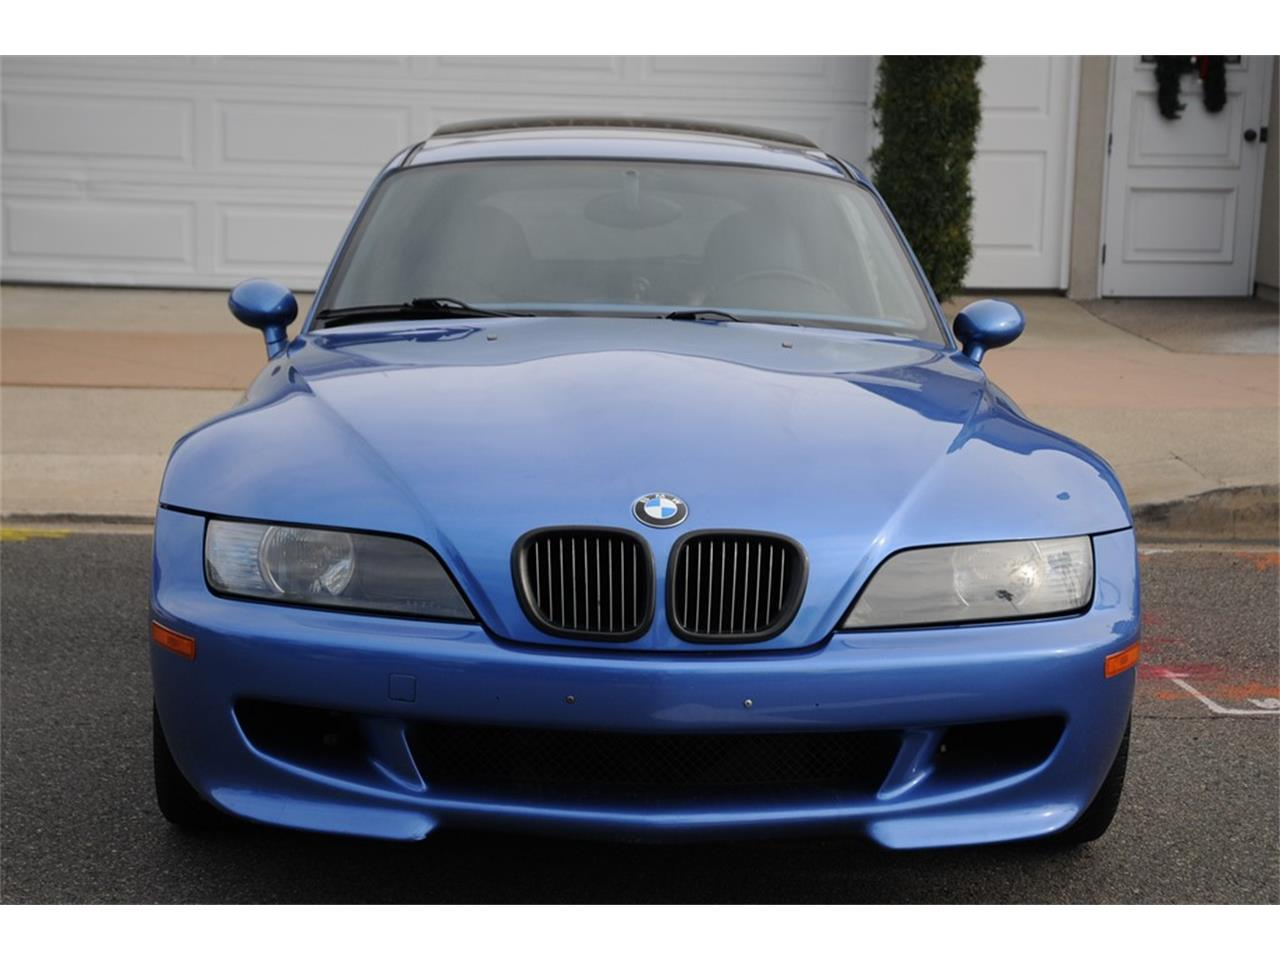 Large Picture of 2000 M Coupe located in California - $17,990.00 Offered by Star European Inc. - P65V